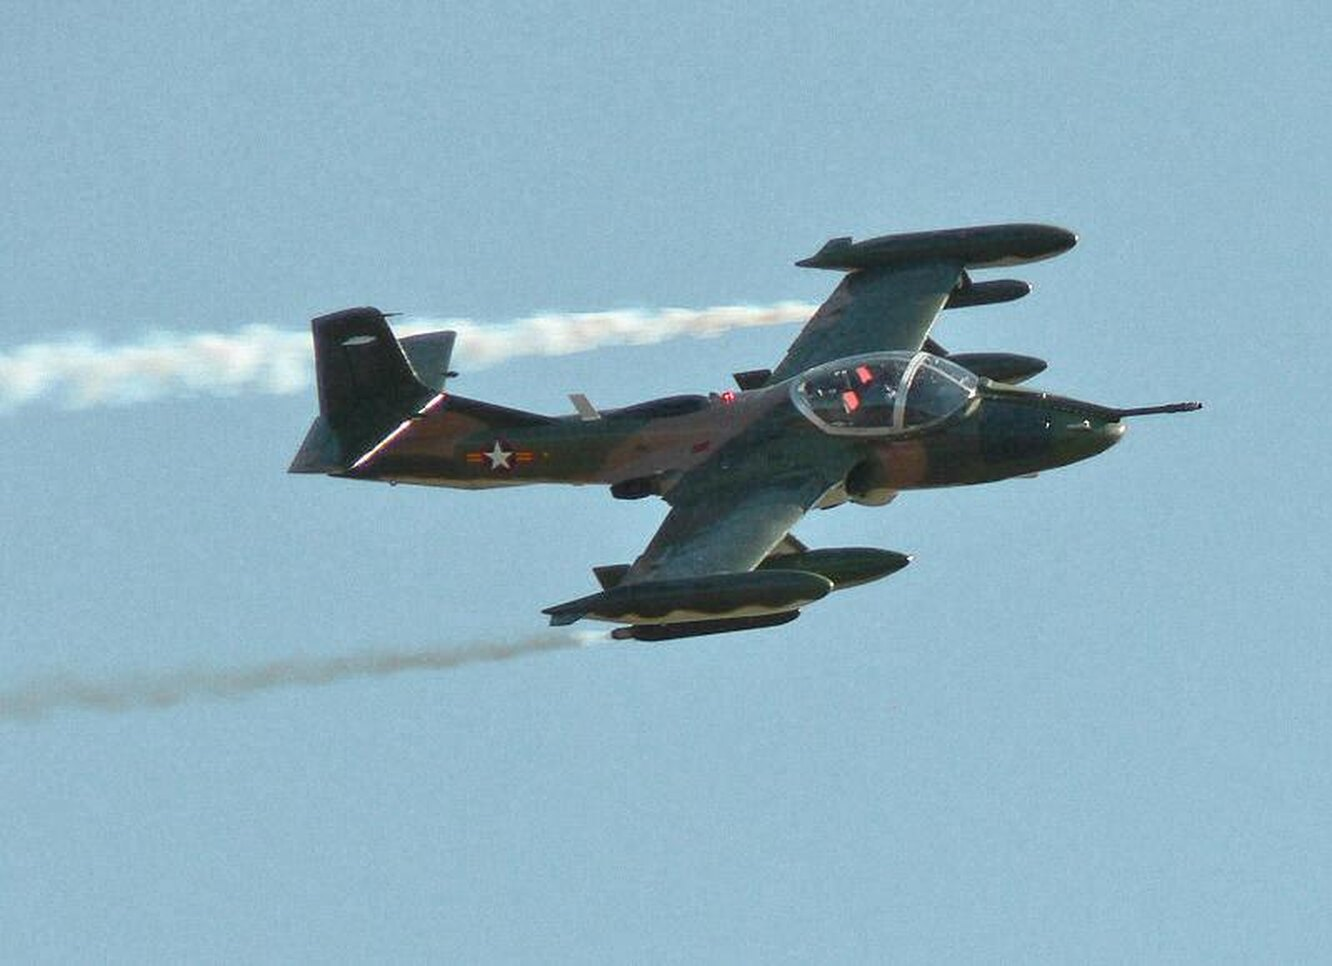 1967. A-37 Dragonfly